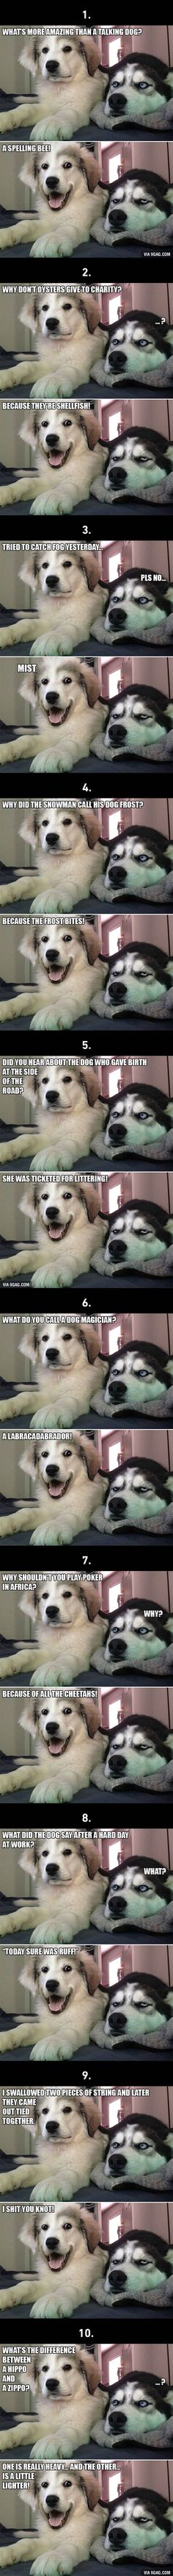 "Viral pictures of the day: 10 Best ""Bad Puns Dog"" Memes Ever"